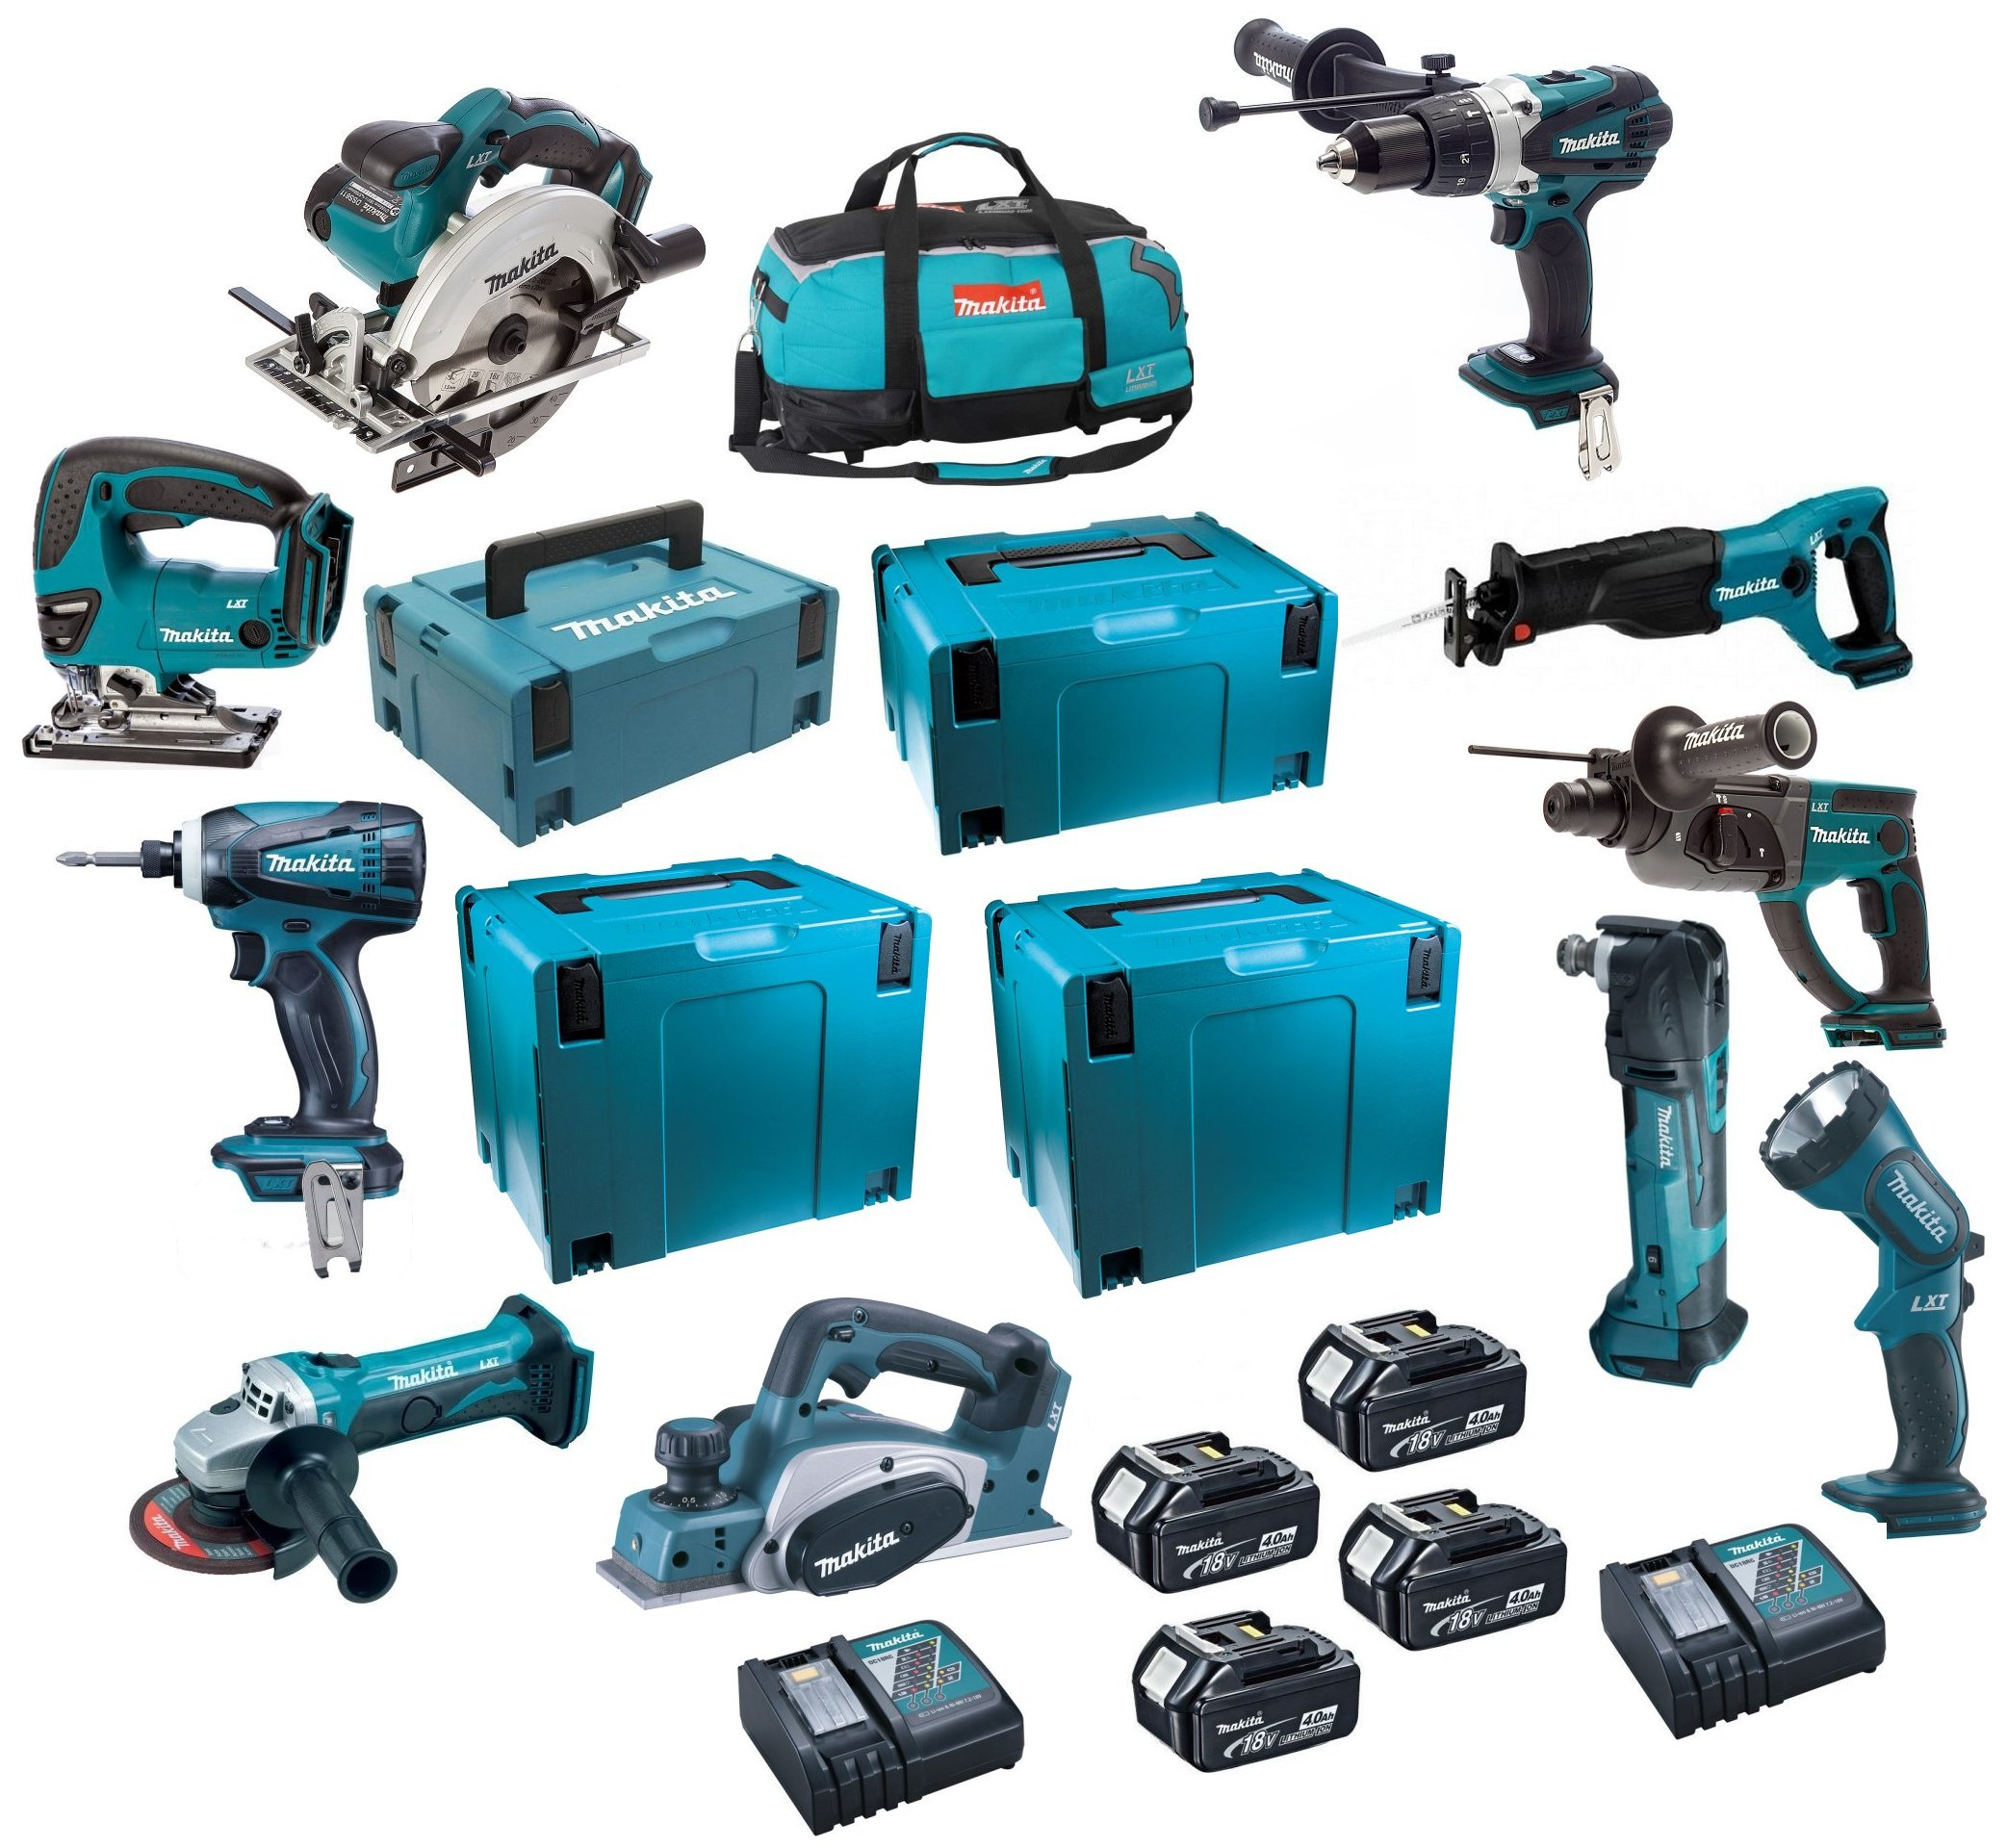 1000 images about makita on pinterest power tools and tools. Black Bedroom Furniture Sets. Home Design Ideas